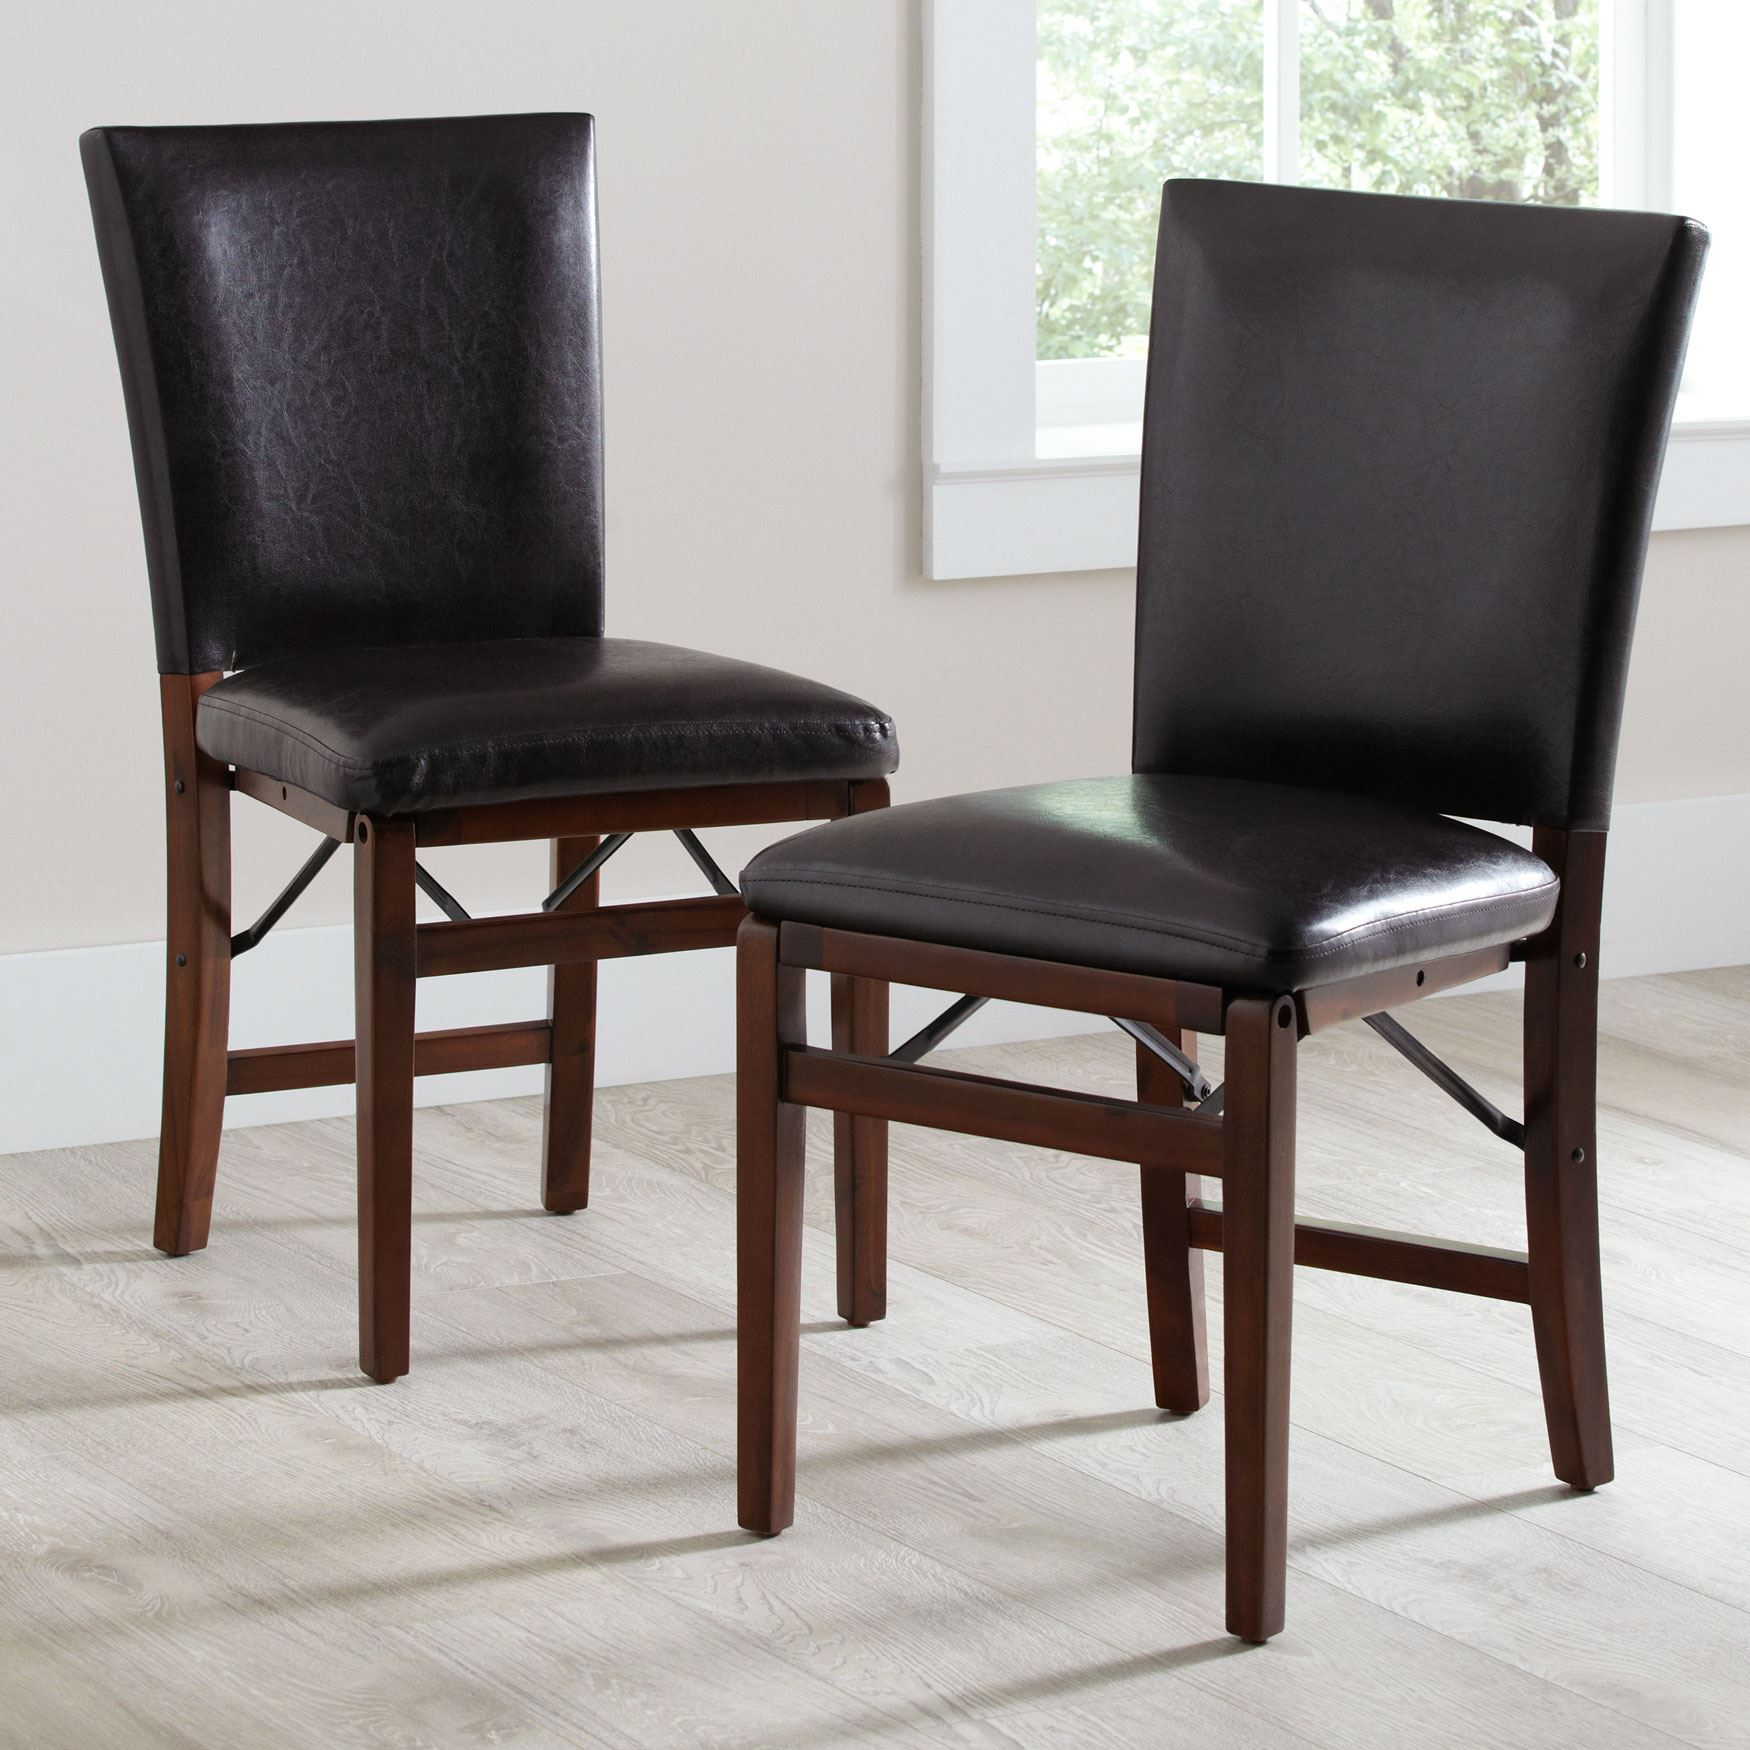 Parsons Folding Chairs, Set of 2, BROWN